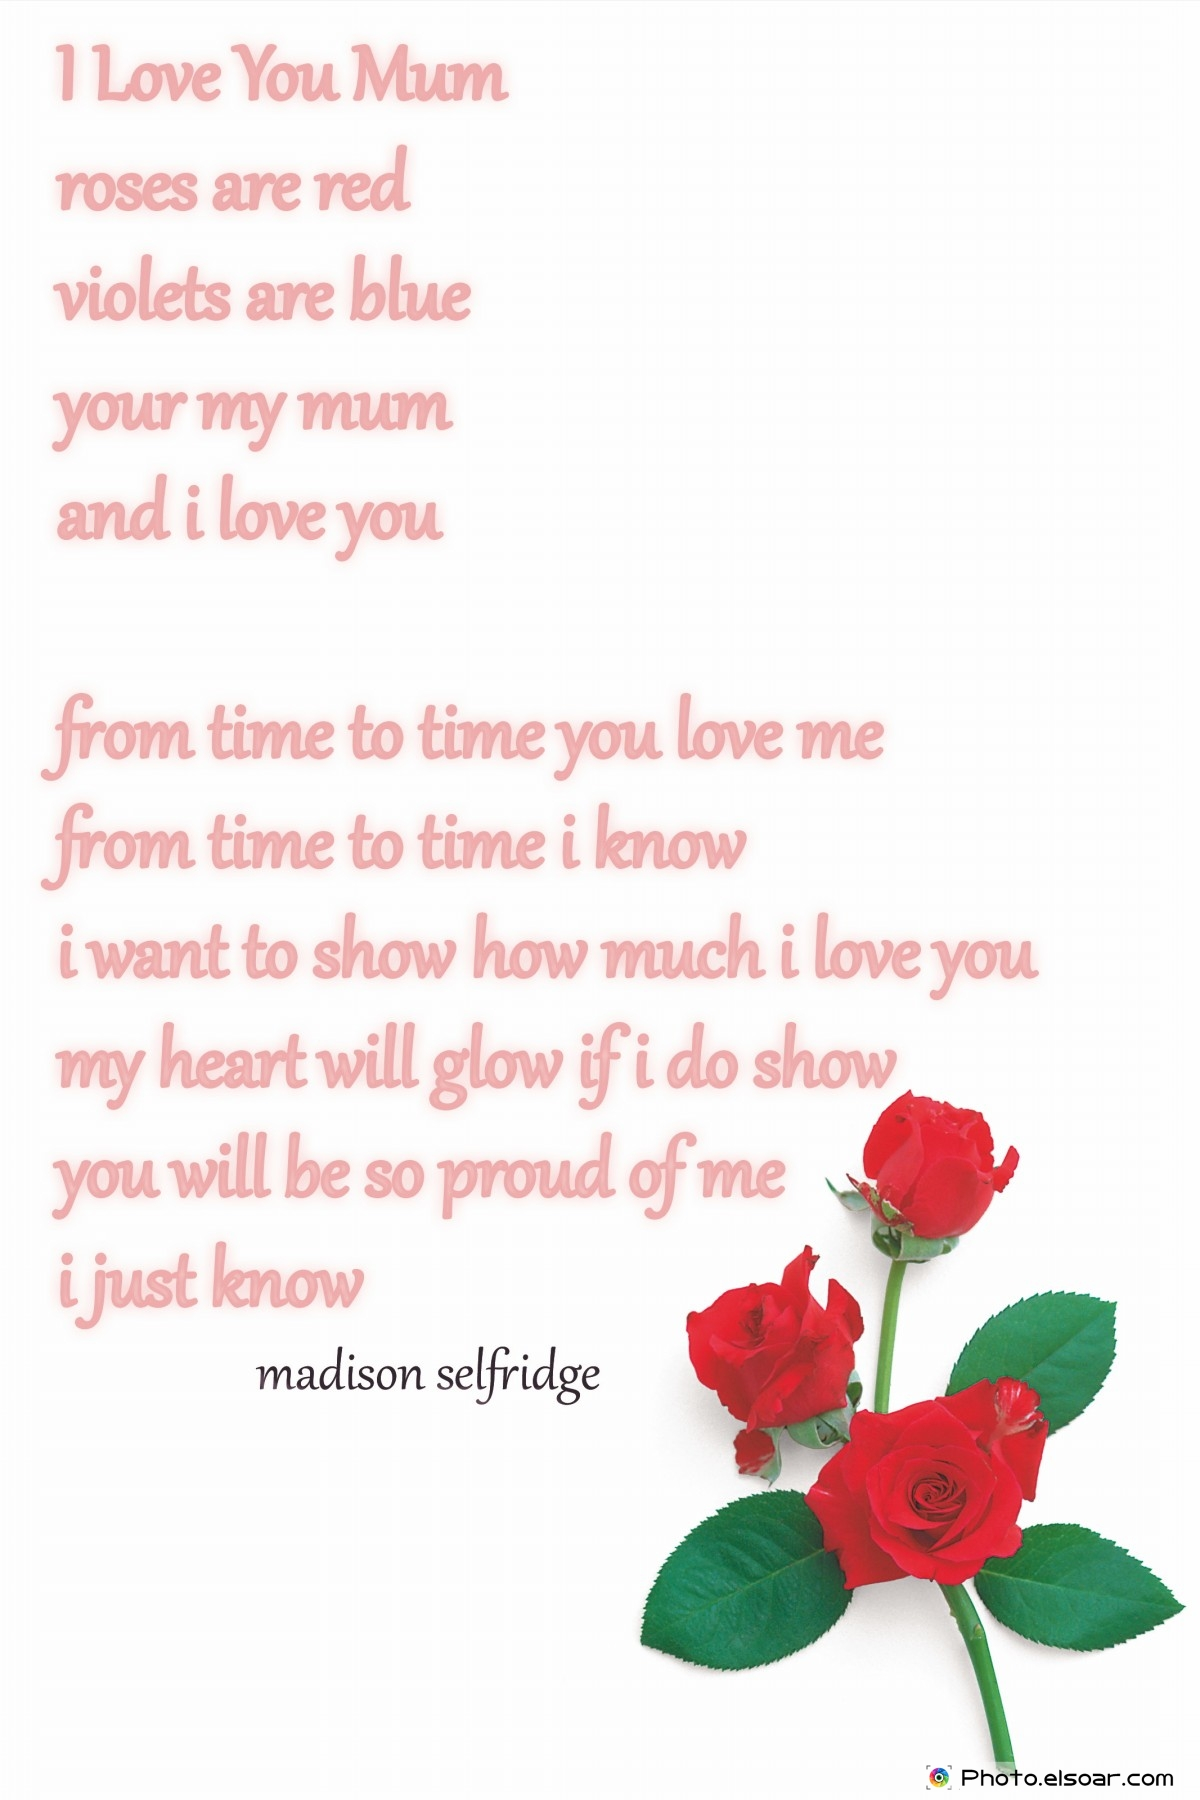 Poems To Show Love For Mom 6